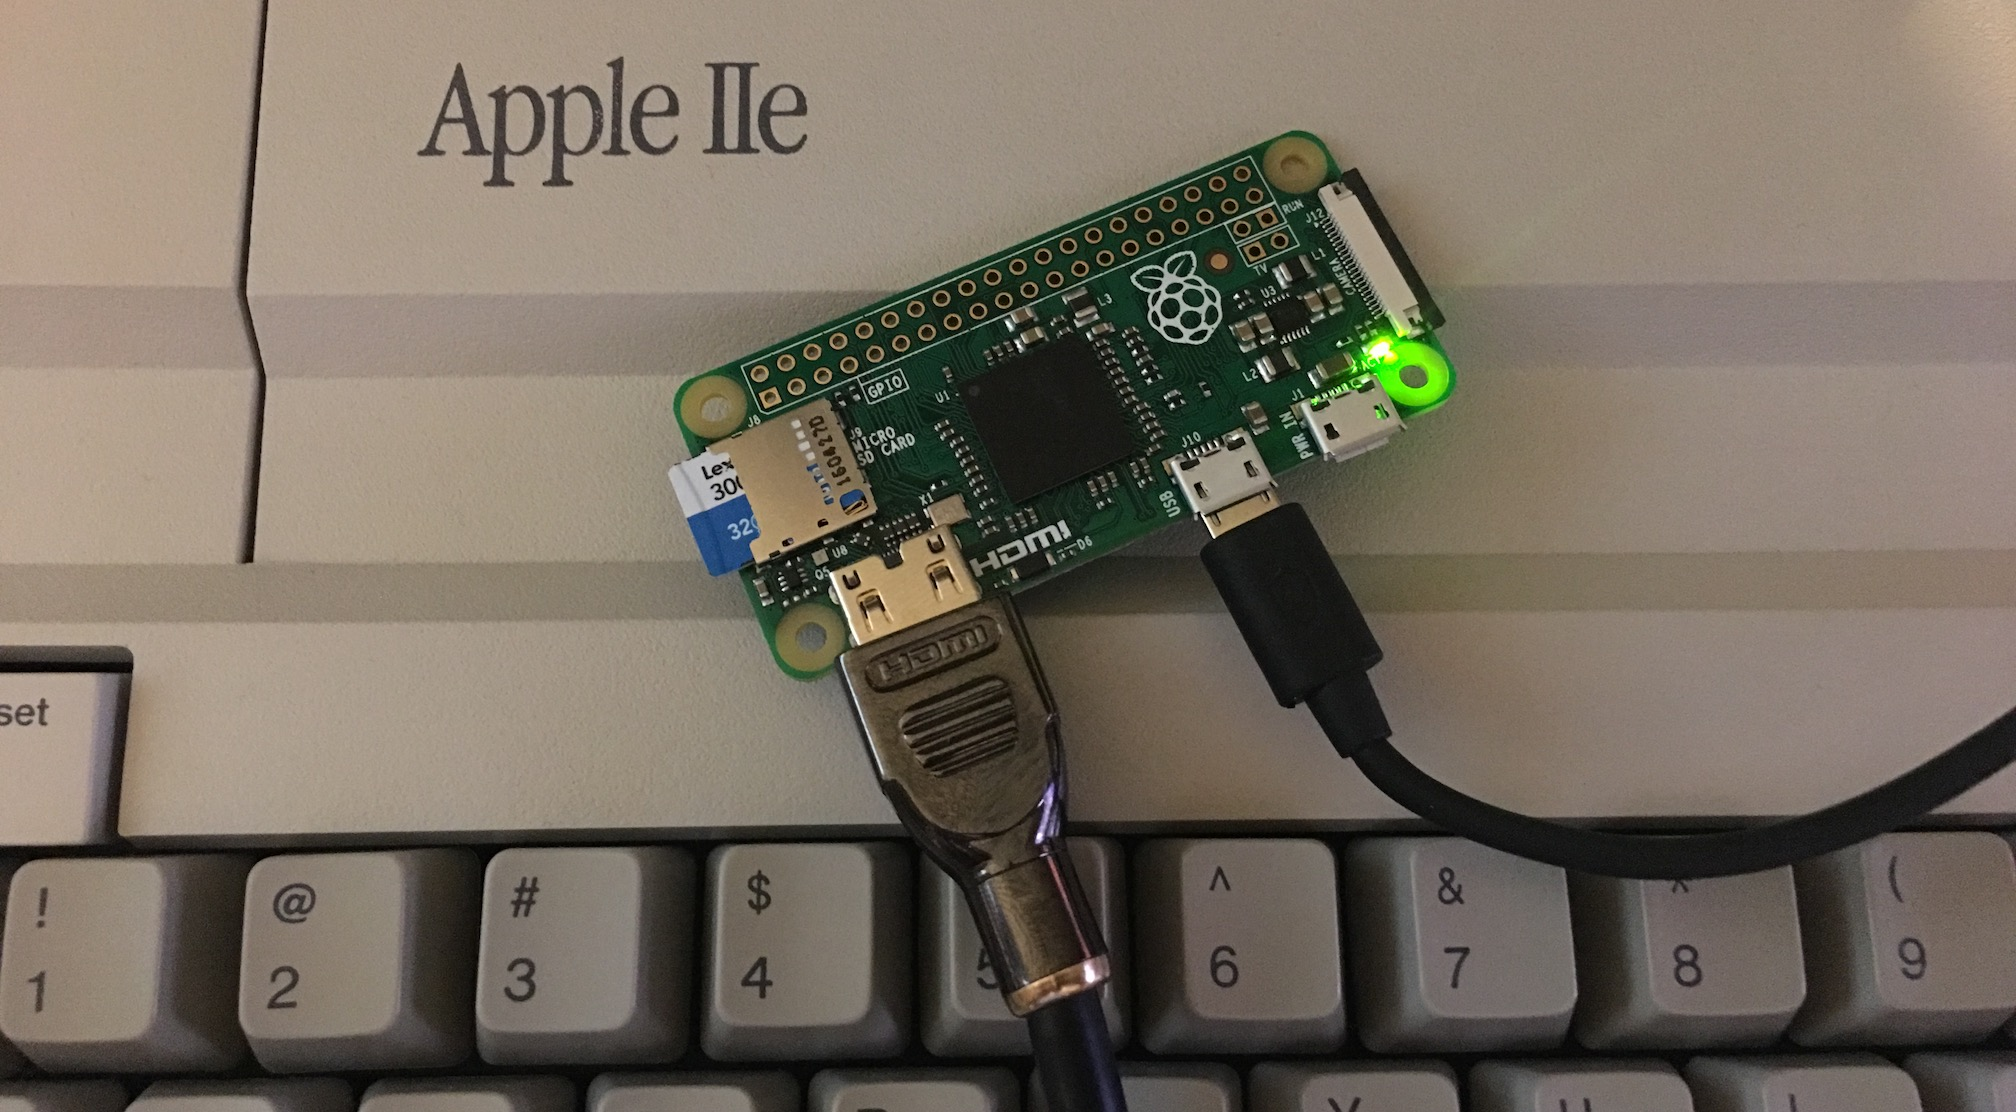 Raspberry Pi Zero on an Apple IIe